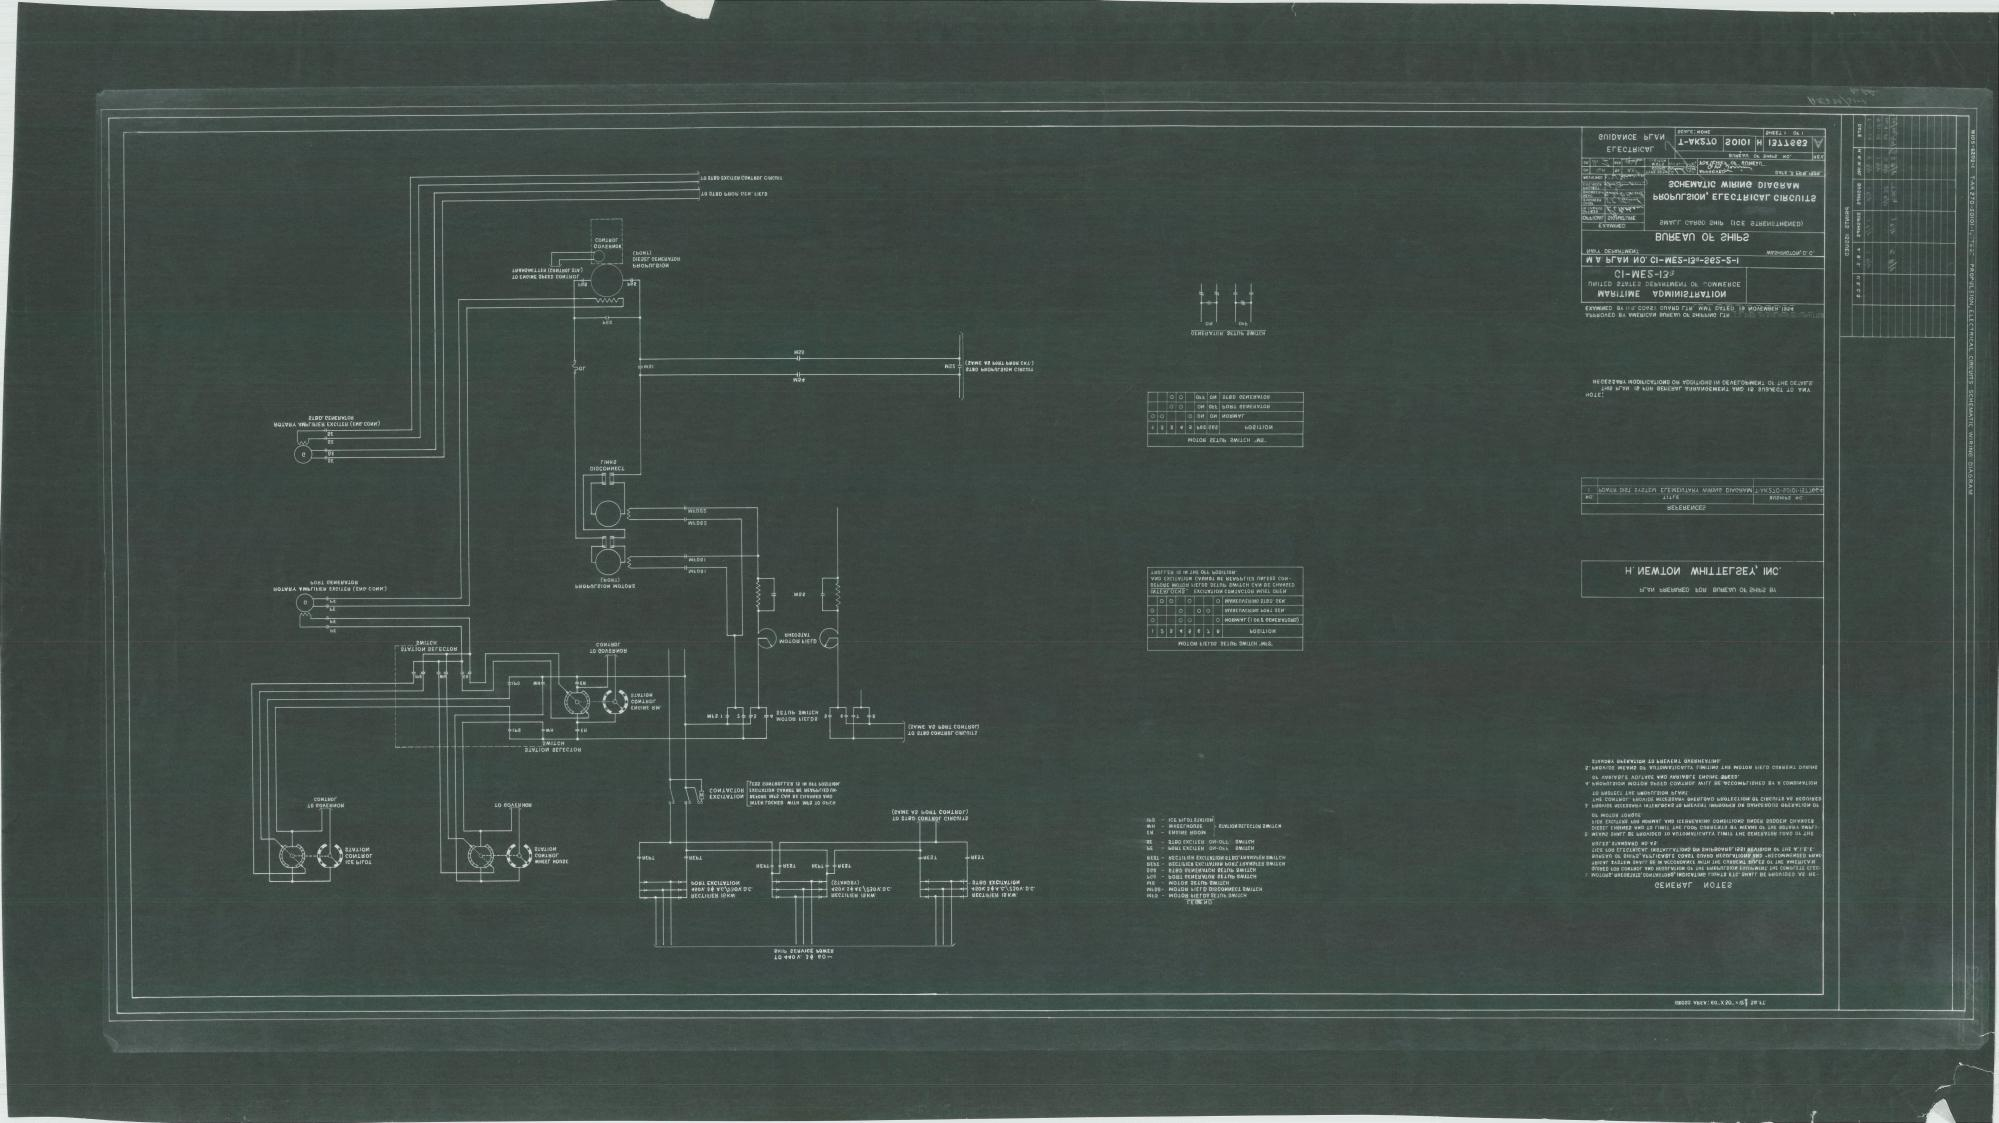 hight resolution of uss eltanin t ak 270 propulsion electrical circuits schematic wiring